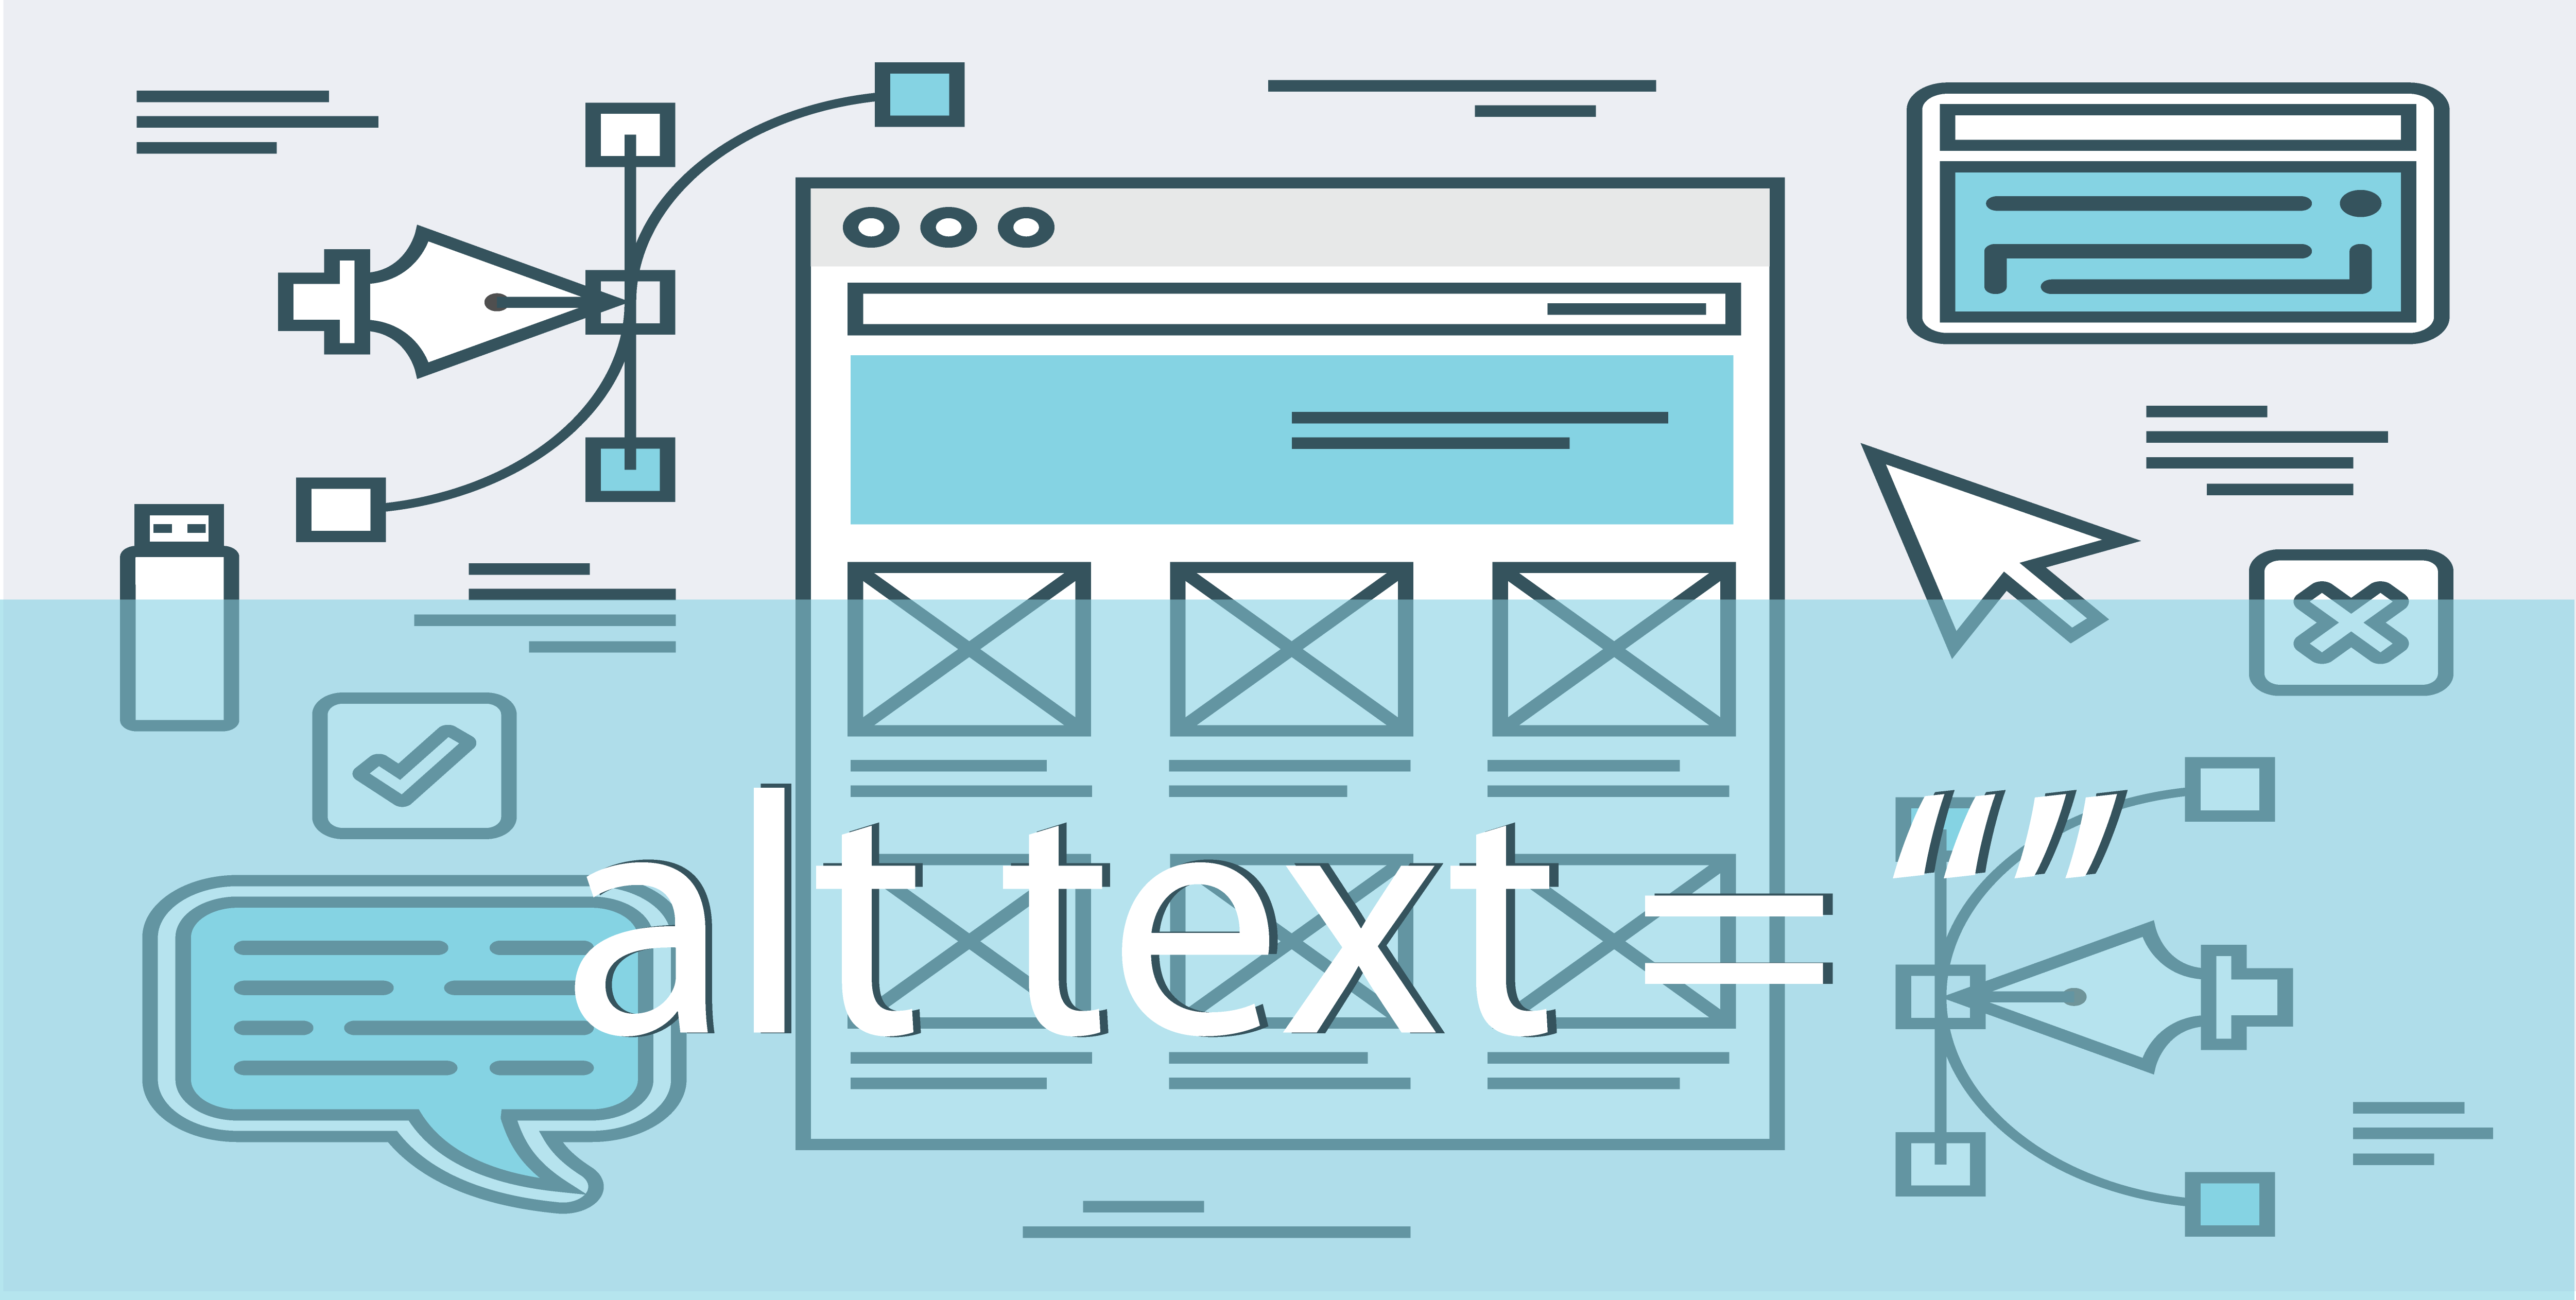 Alt text graphic